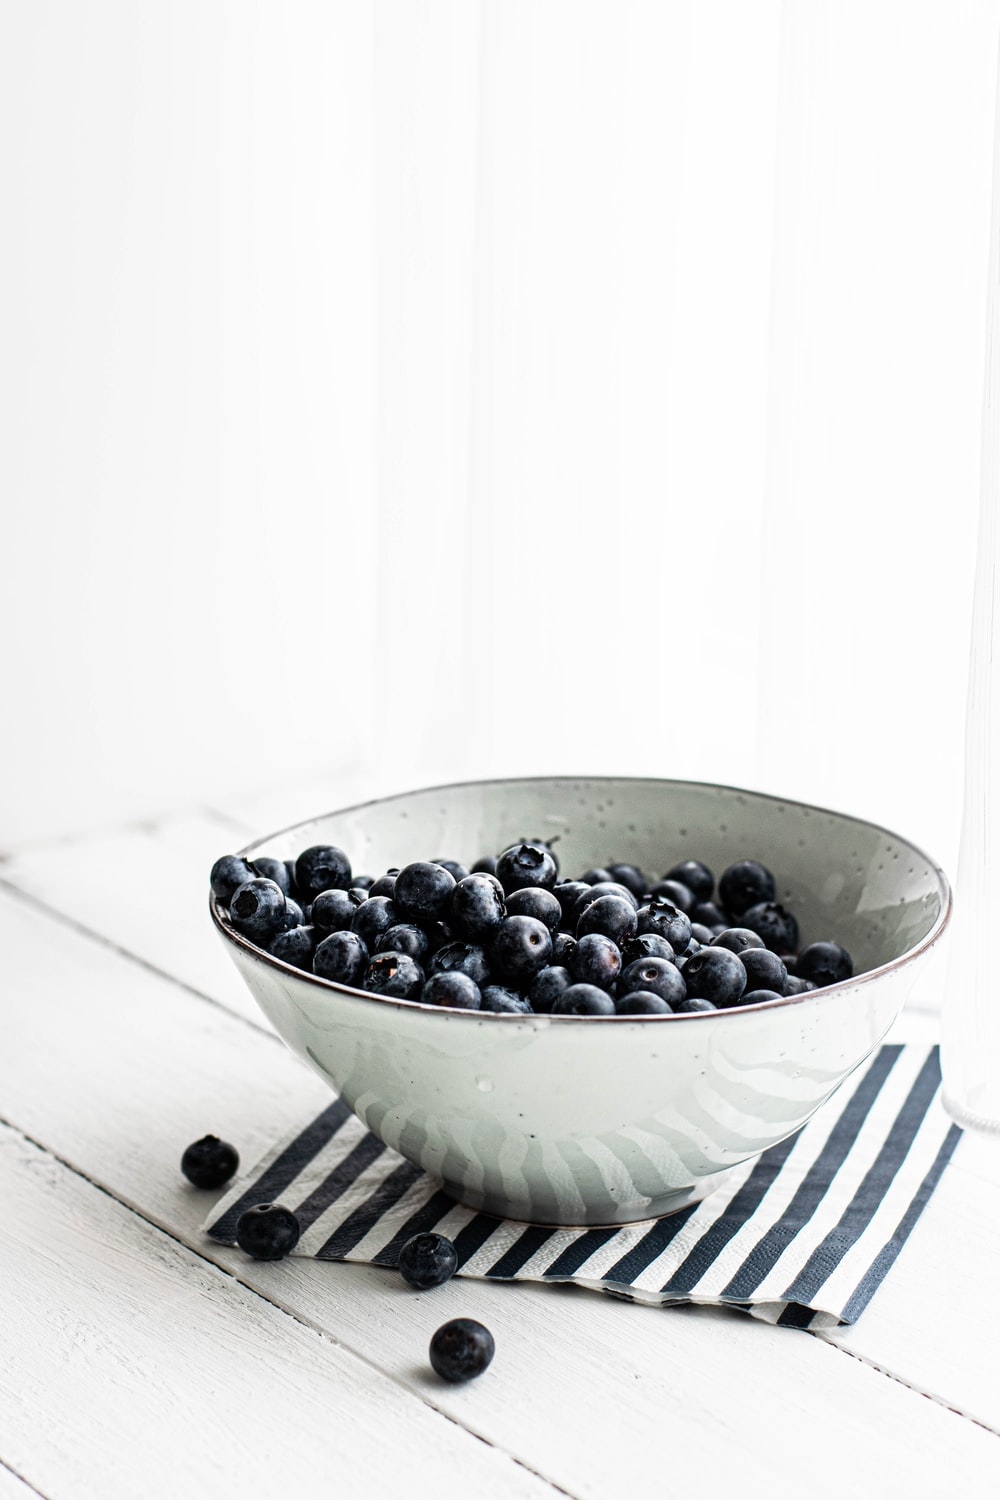 black beans in white ceramic bowl close-up photography